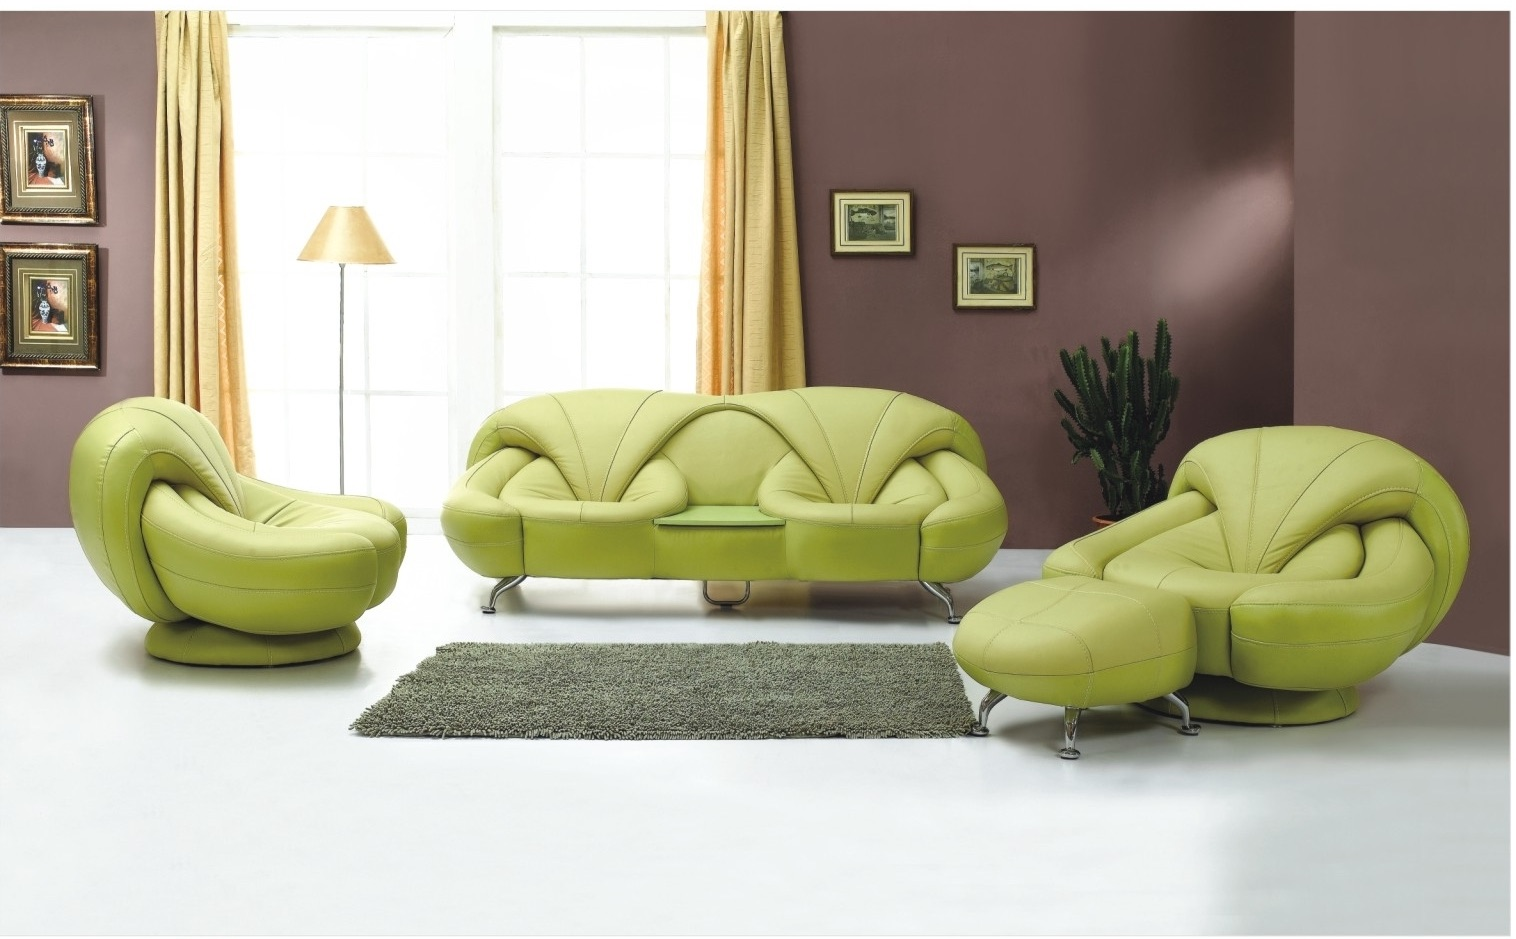 Contemporary furniture adapts latest trending elements